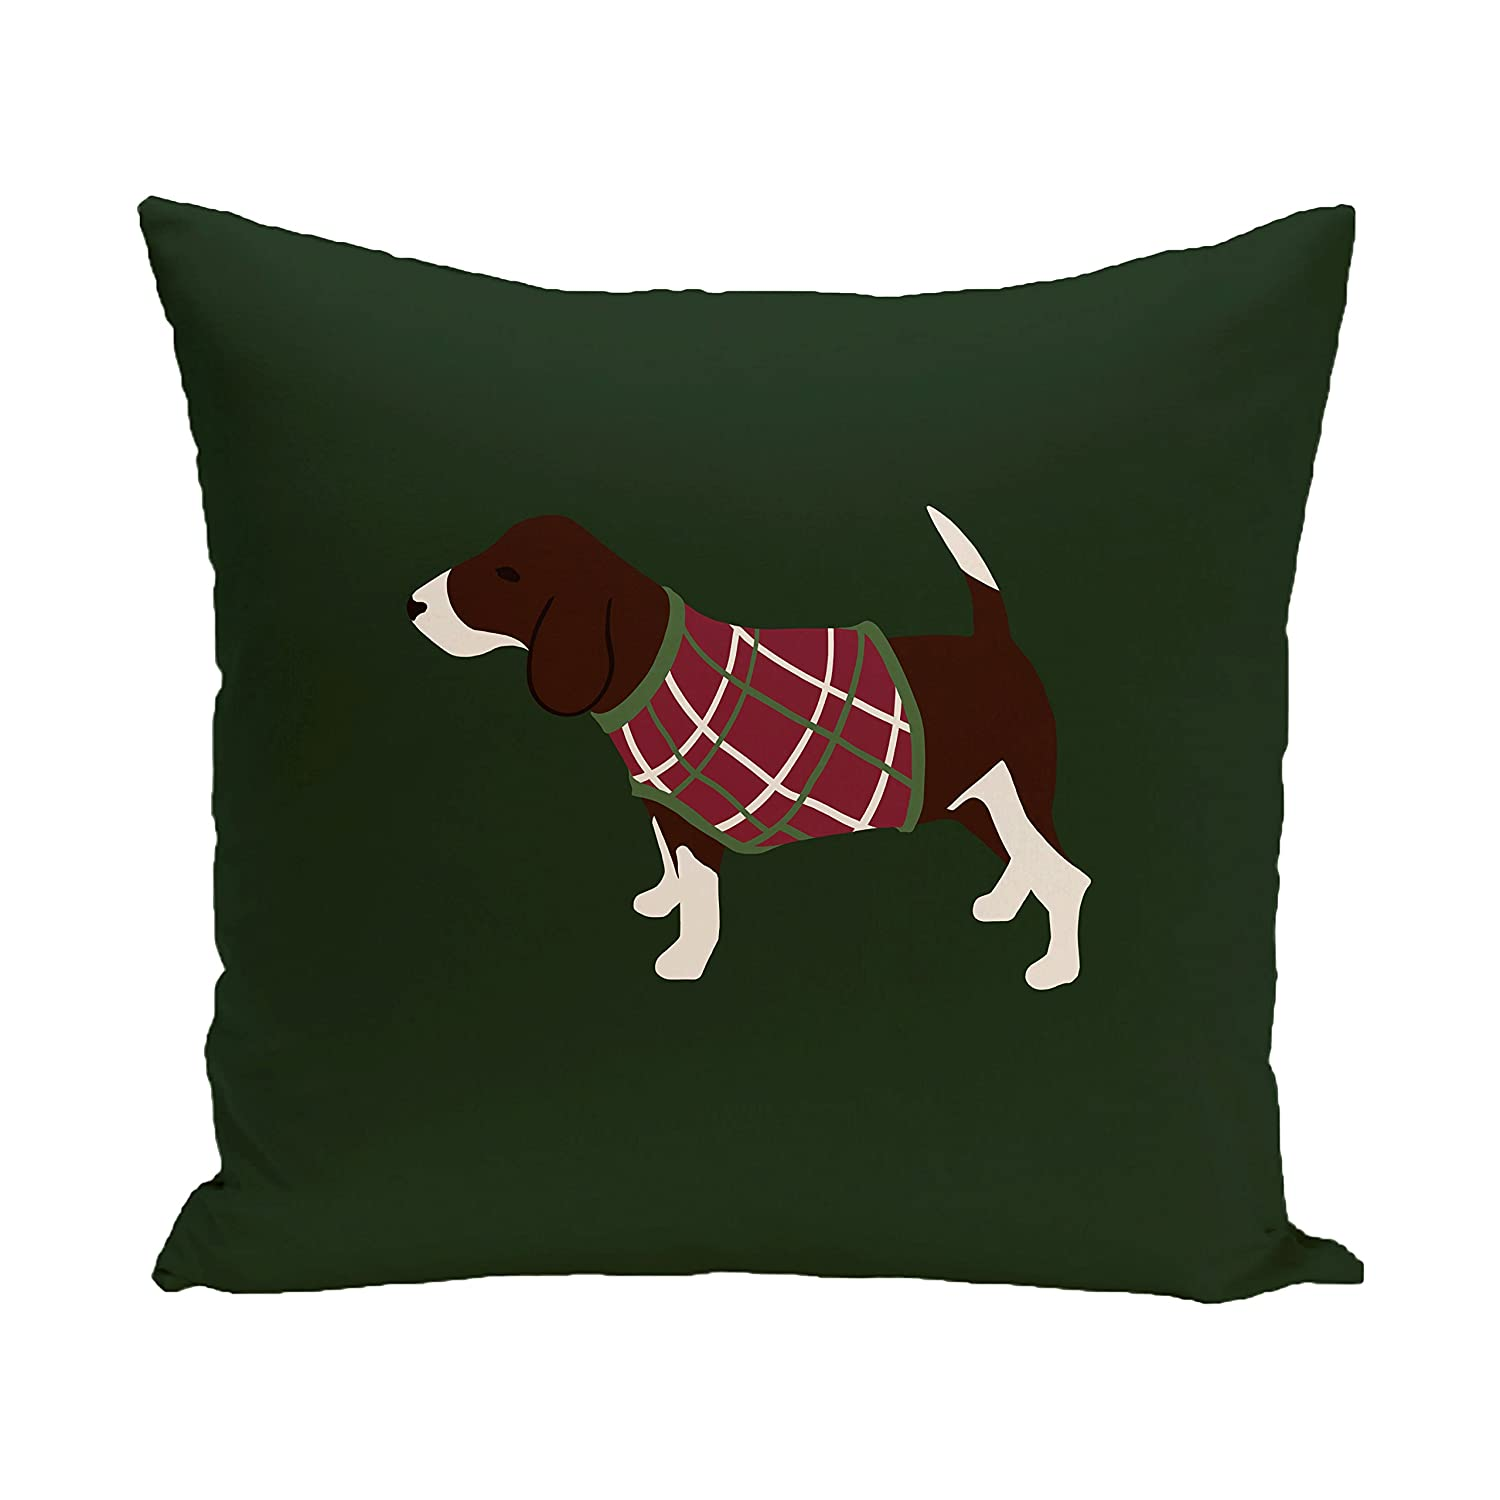 Dark Green E by design PHAN253GR26-16 Warmest Wishes Decorative Holiday Animal Print Pillow 16 by 16